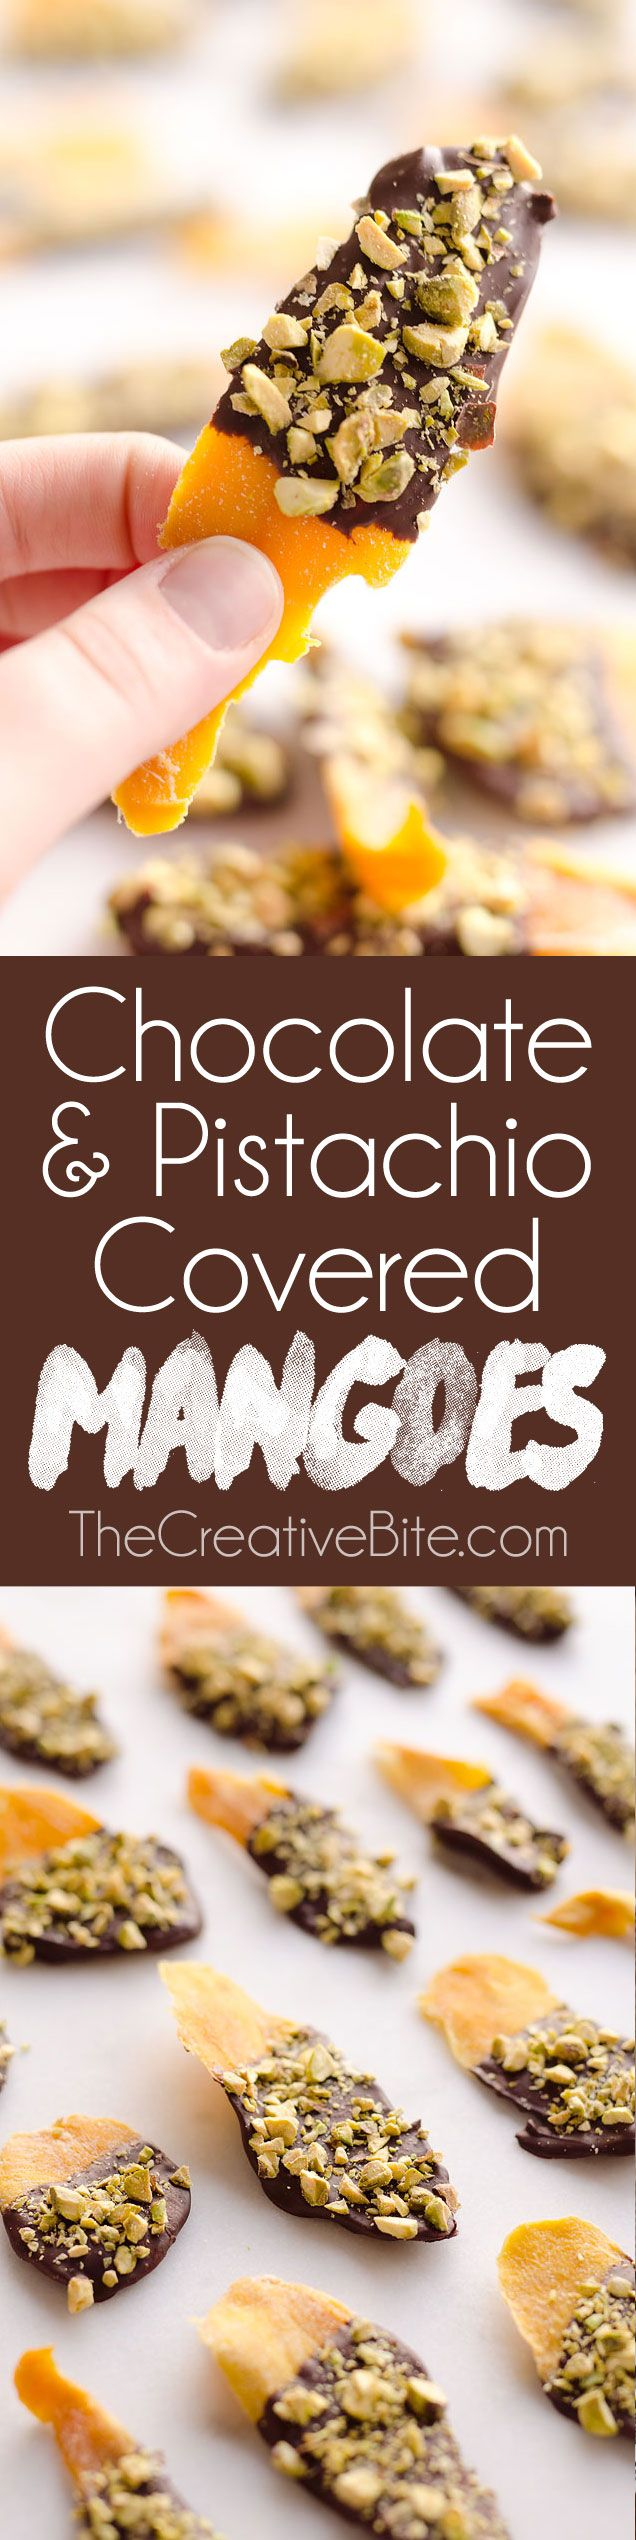 Chocolate & Pistachio Covered Mangoes are an easy and healthy treat to satisfy your sweet tooth! With only 3 simple ingredients, this delicious snack comes together in no time and is perfect for on the go. #Healthy #Snack #Fruit